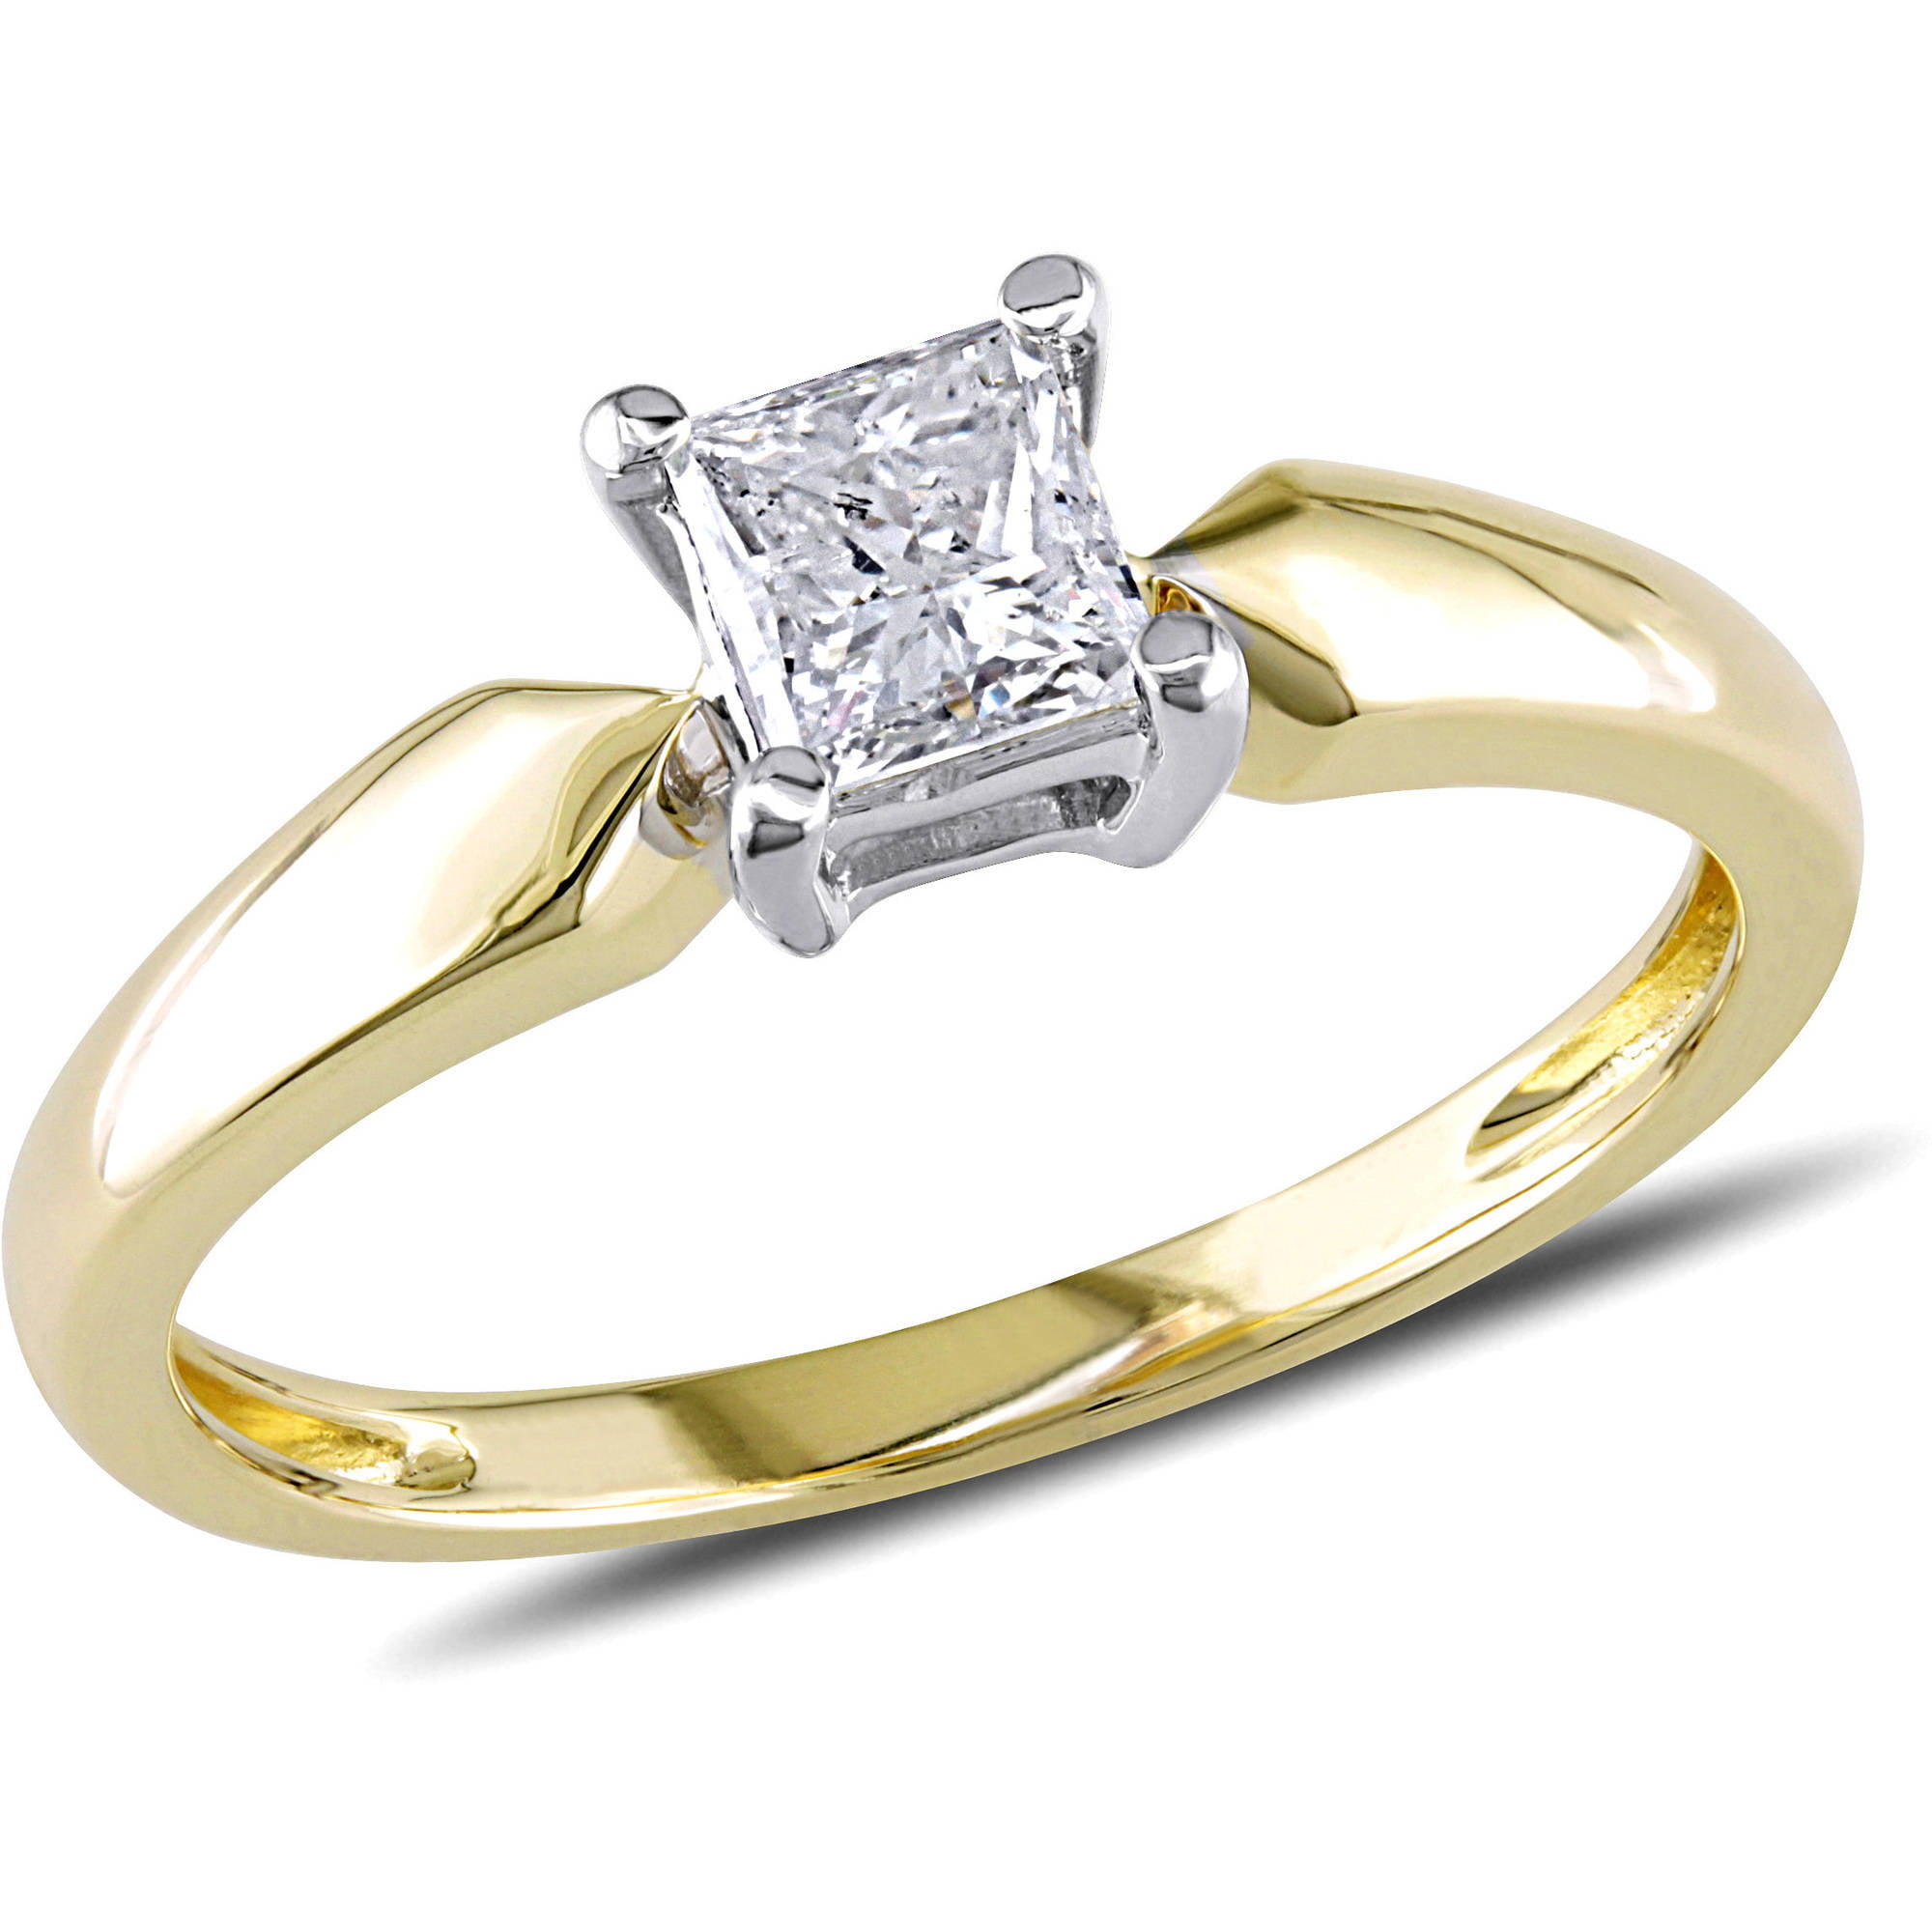 Miabella 1 2 Carat T.W. Princess Cut Diamond Solitaire Ring in 14kt Yellow Gold by